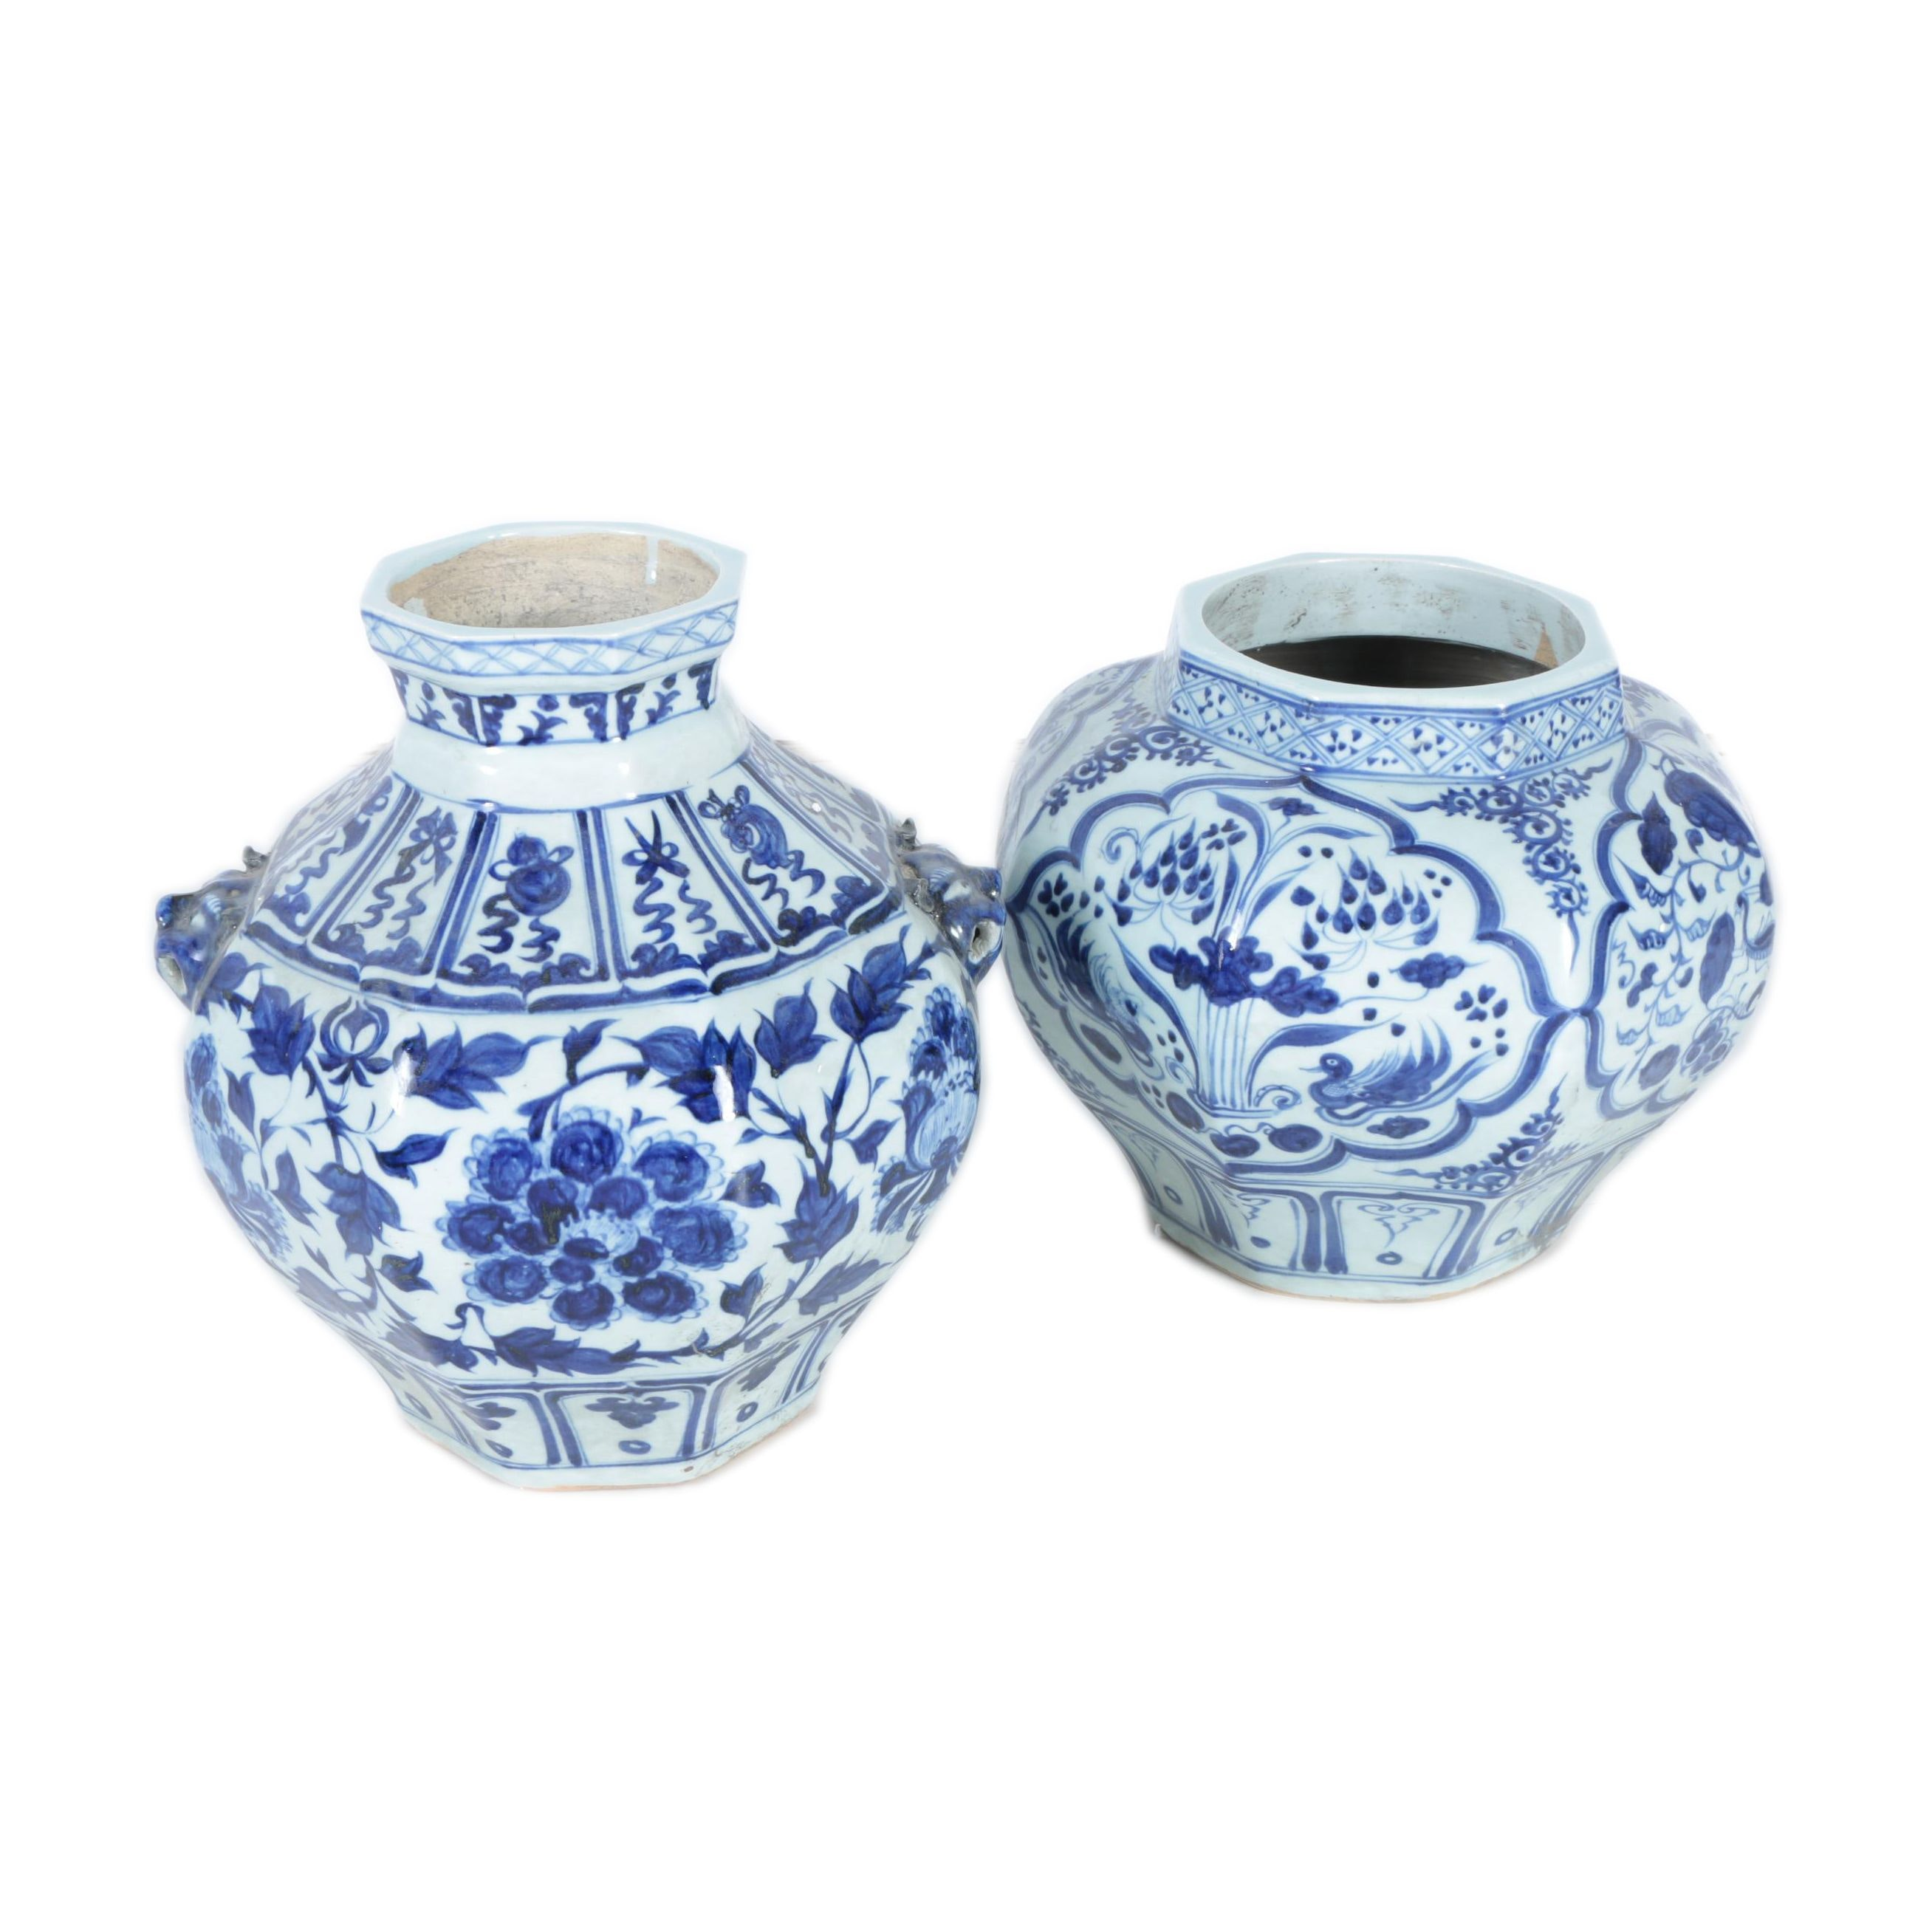 Blue and White Chinese Ceramic Vases